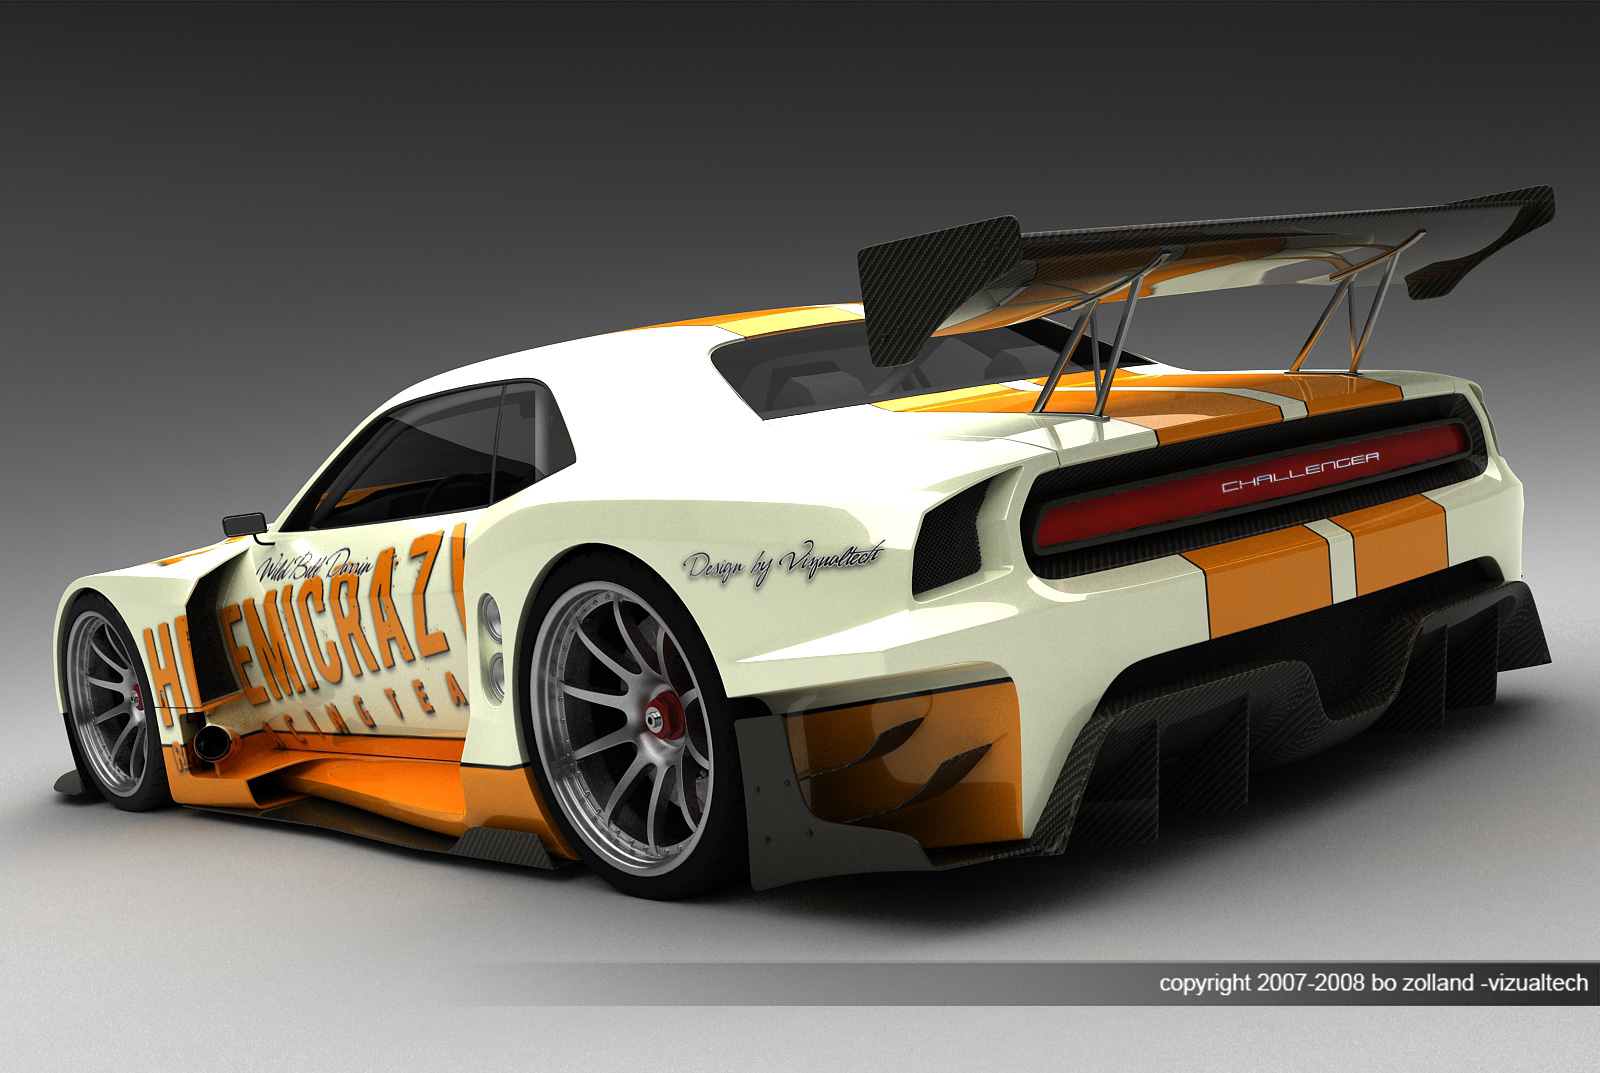 dodge challenger image dodge challenger body kit. Cars Review. Best American Auto & Cars Review